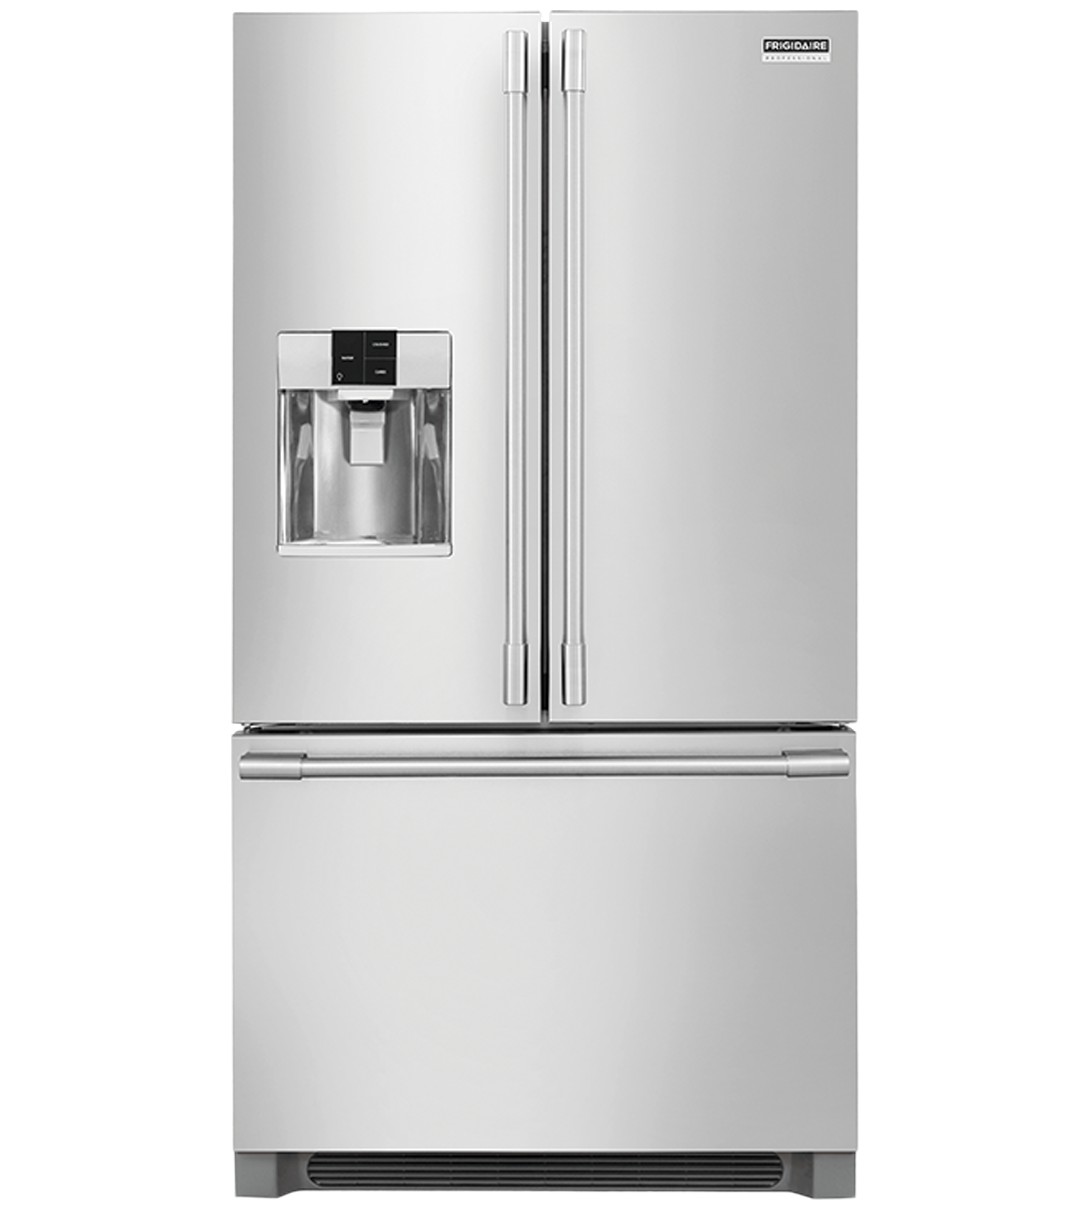 Frigidaire Professional Refrigerator in Stainless Steel color showcased by Corbeil Electro Store